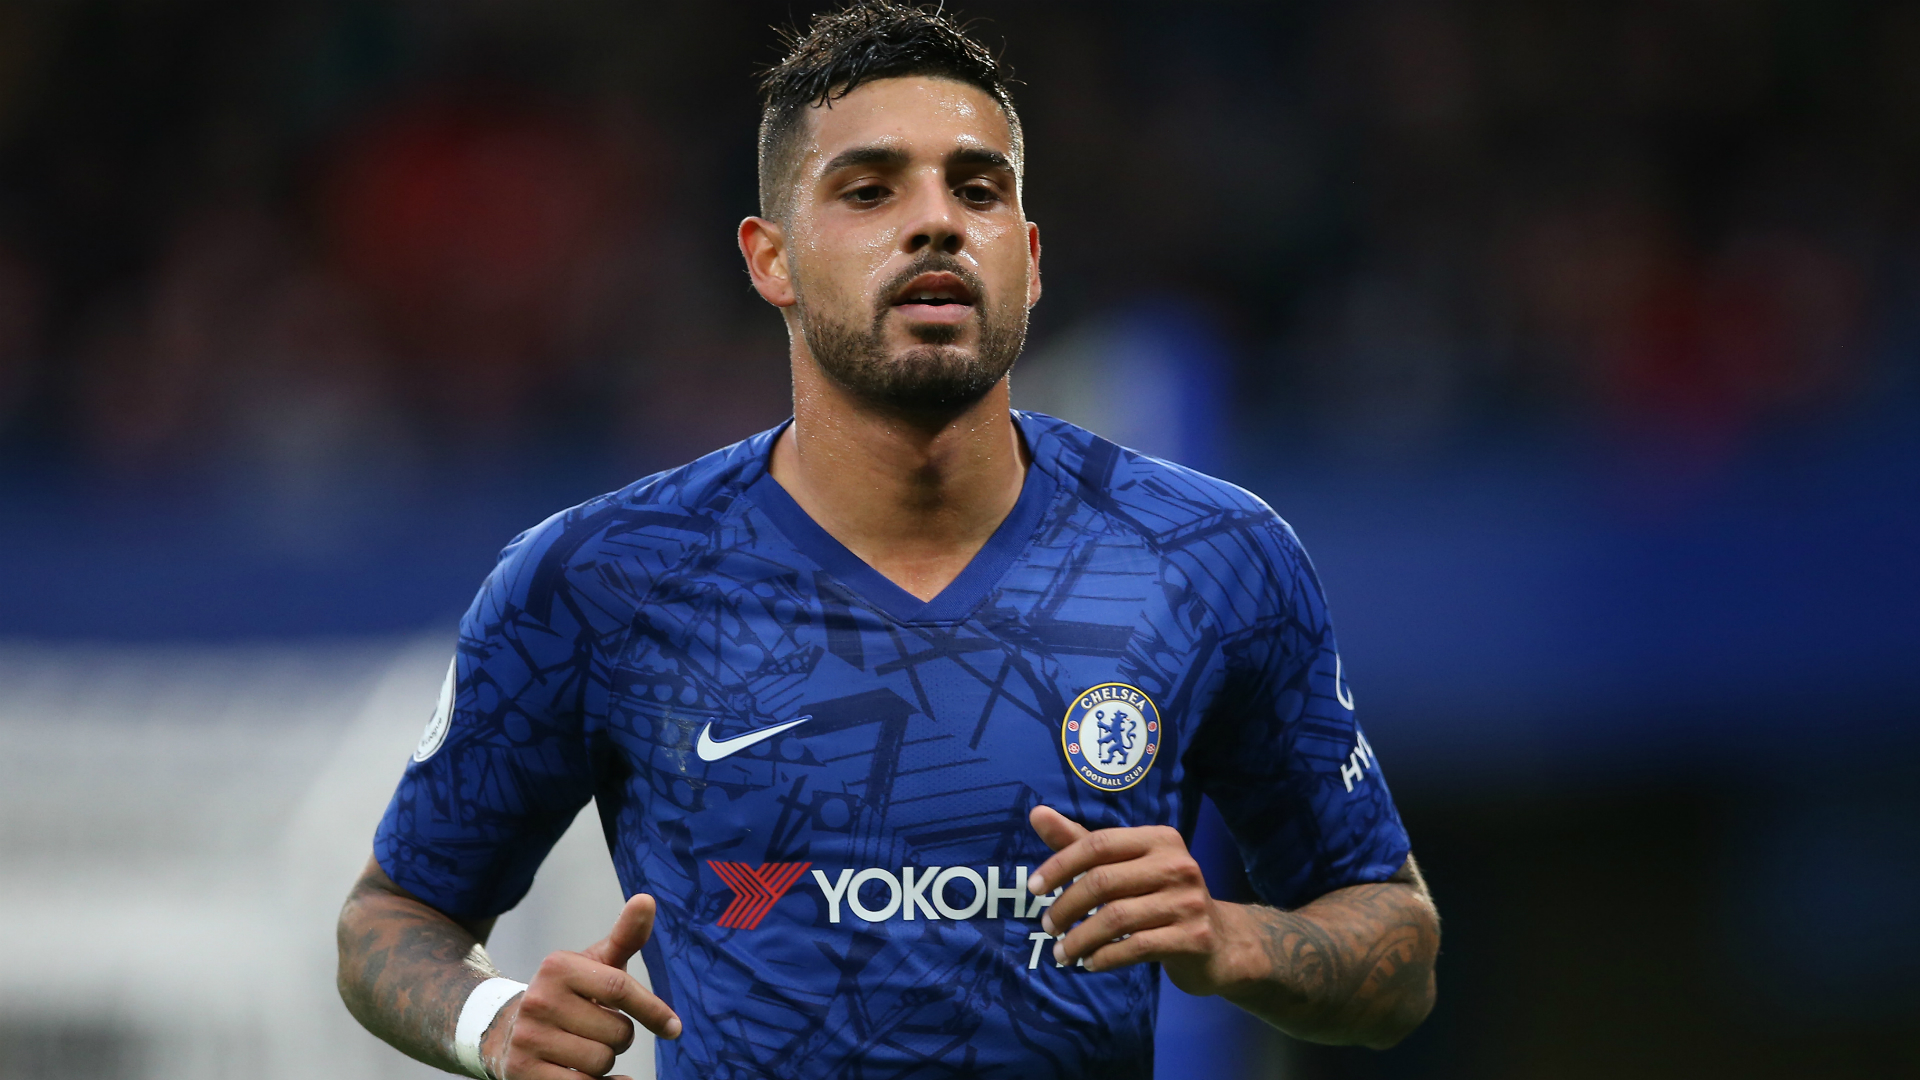 Emerson admits Serie A return 'could happen' amid Juventus, Inter and Napoli interest